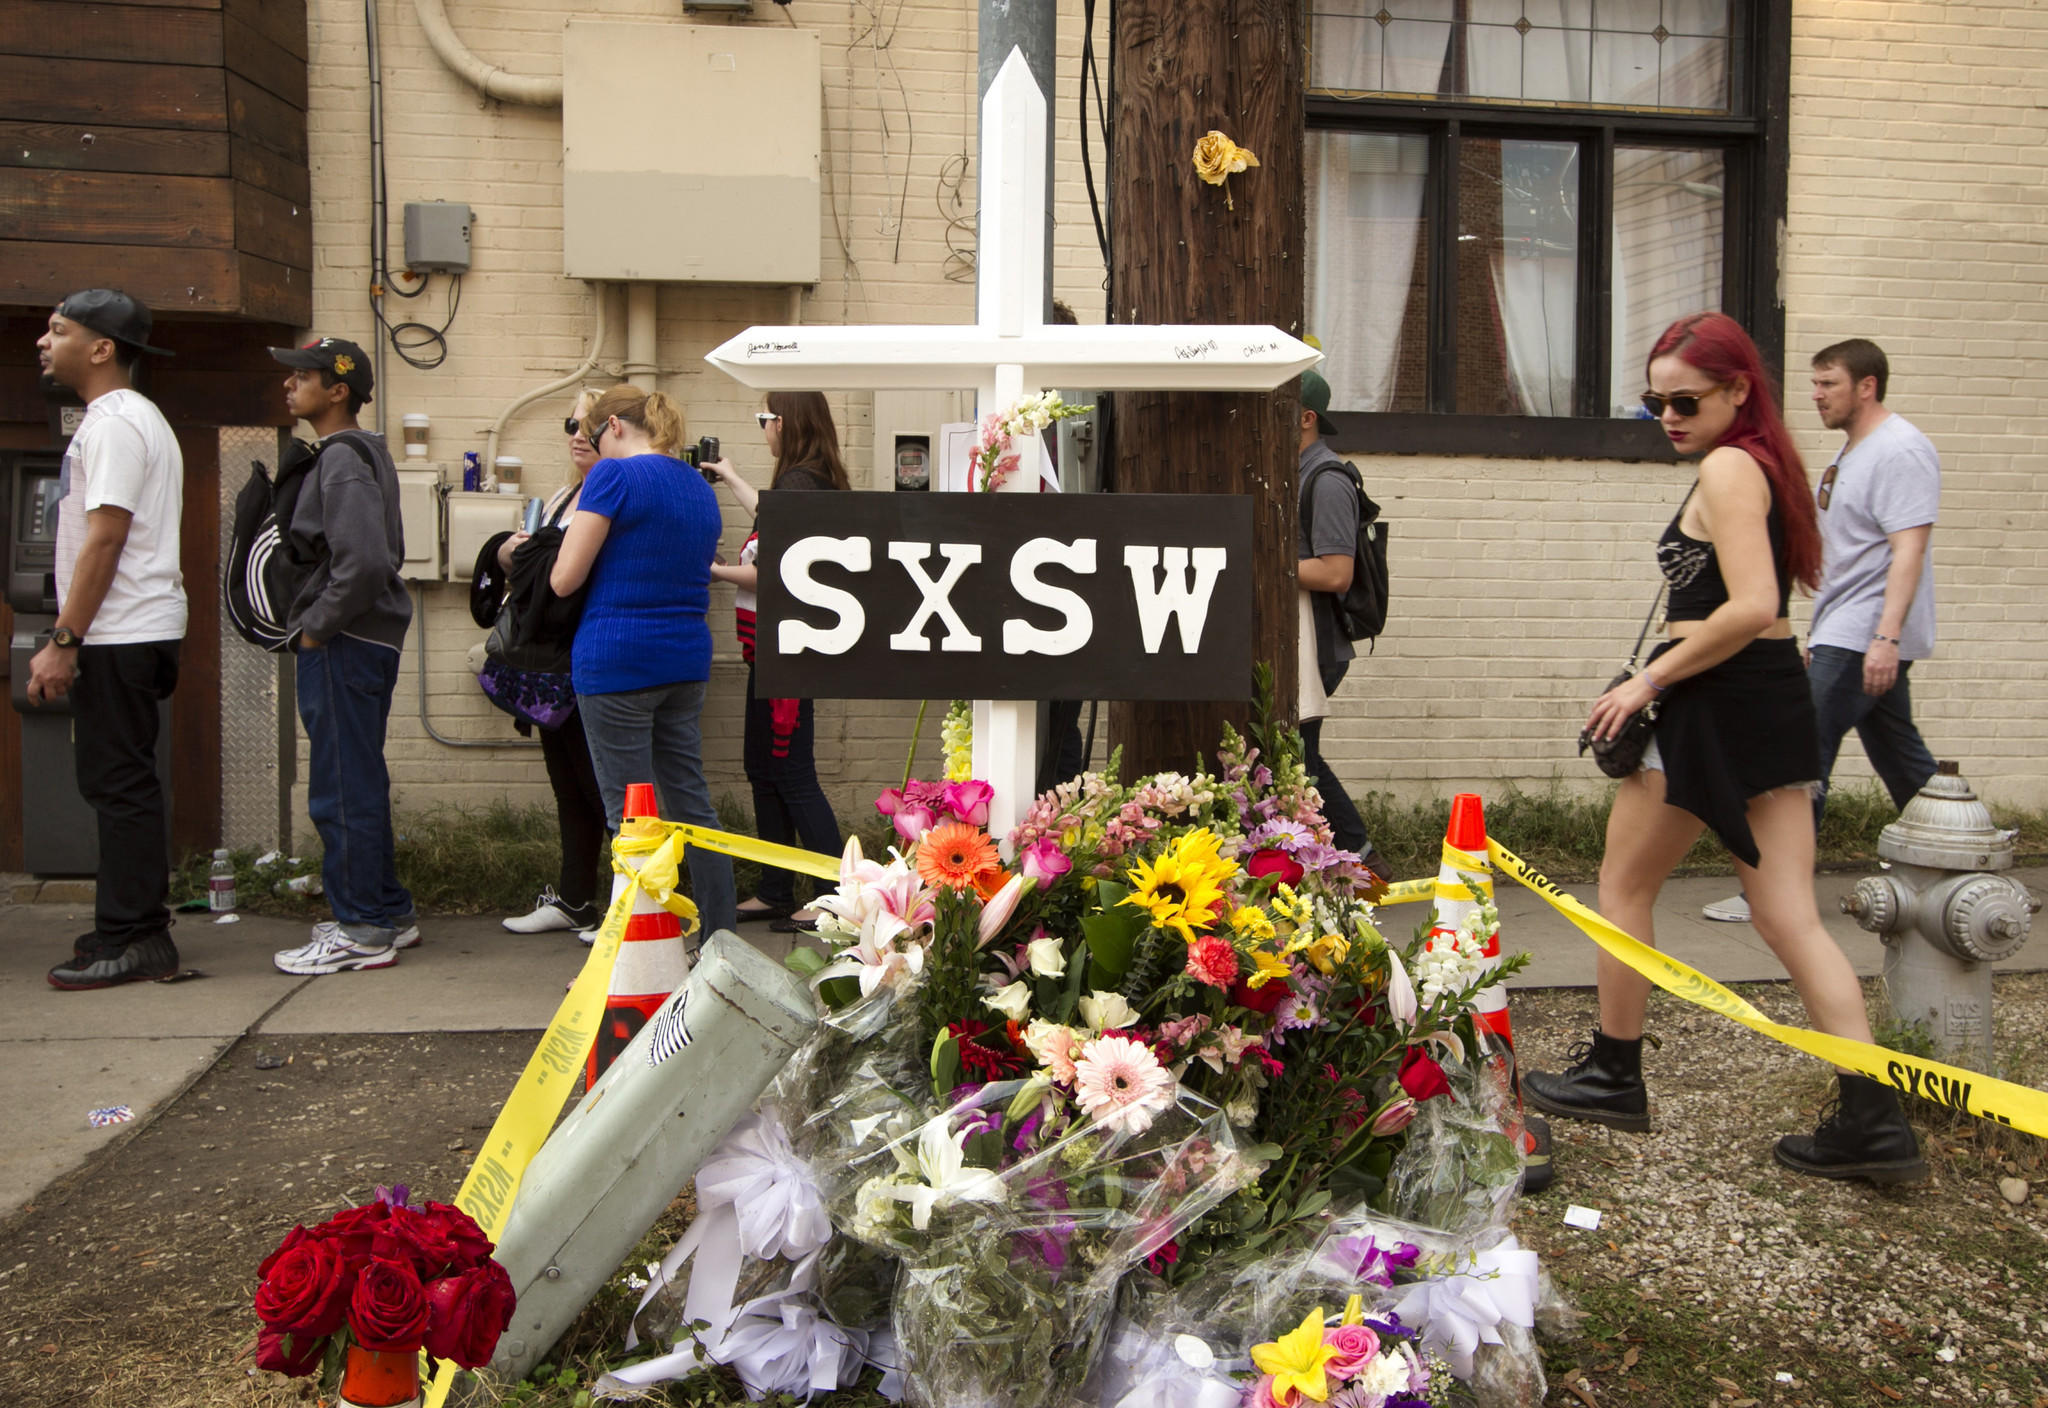 A cross and flowers were placed outside The Mohawk club in Austin, Texas, as a memorial to the people who died in the hit-and-run tragedy at SXSW.